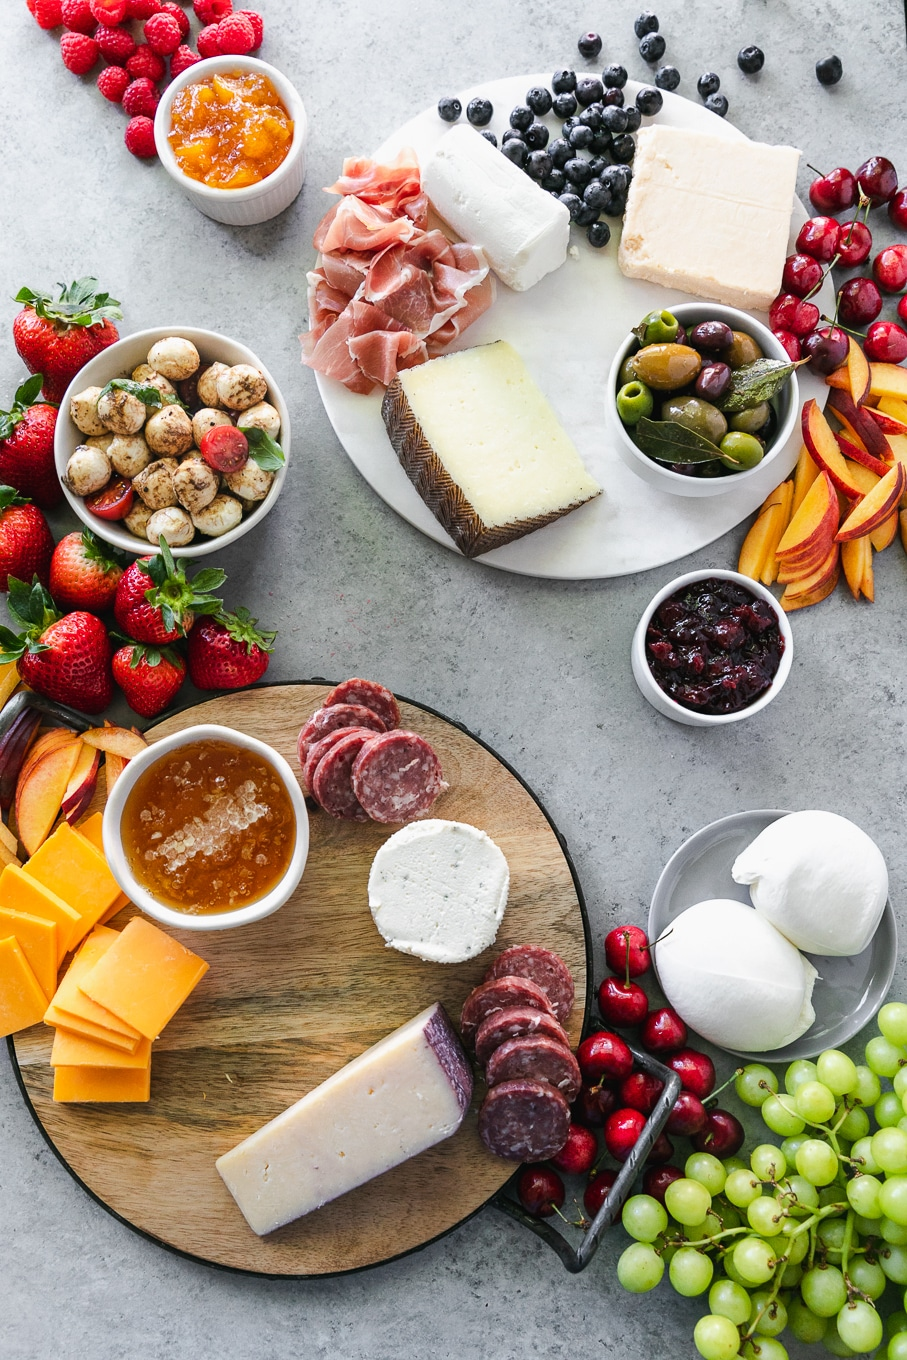 Overhead shot of cheeses, salami, and fruit